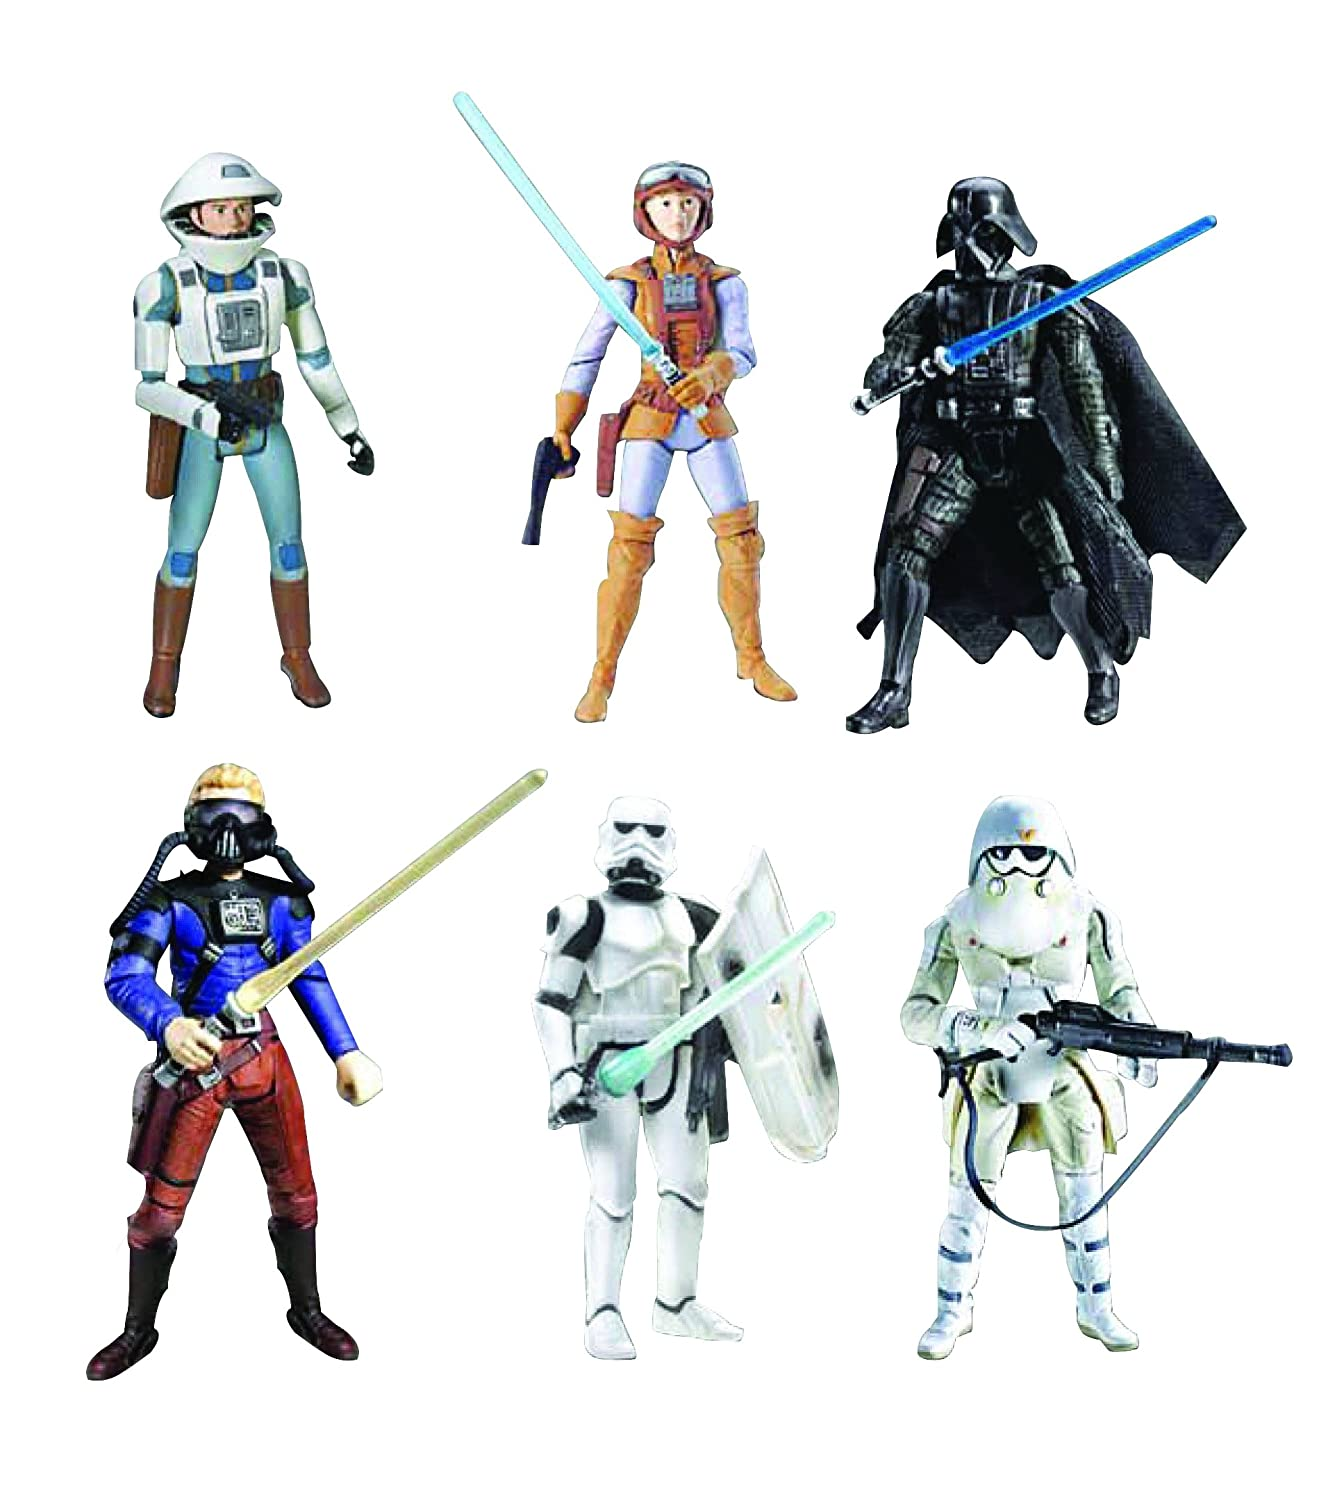 b21f4a4e29 Hasbro Star Wars: Ralph McQuarrie Concept Collection Action Figure Set (2  of 2)